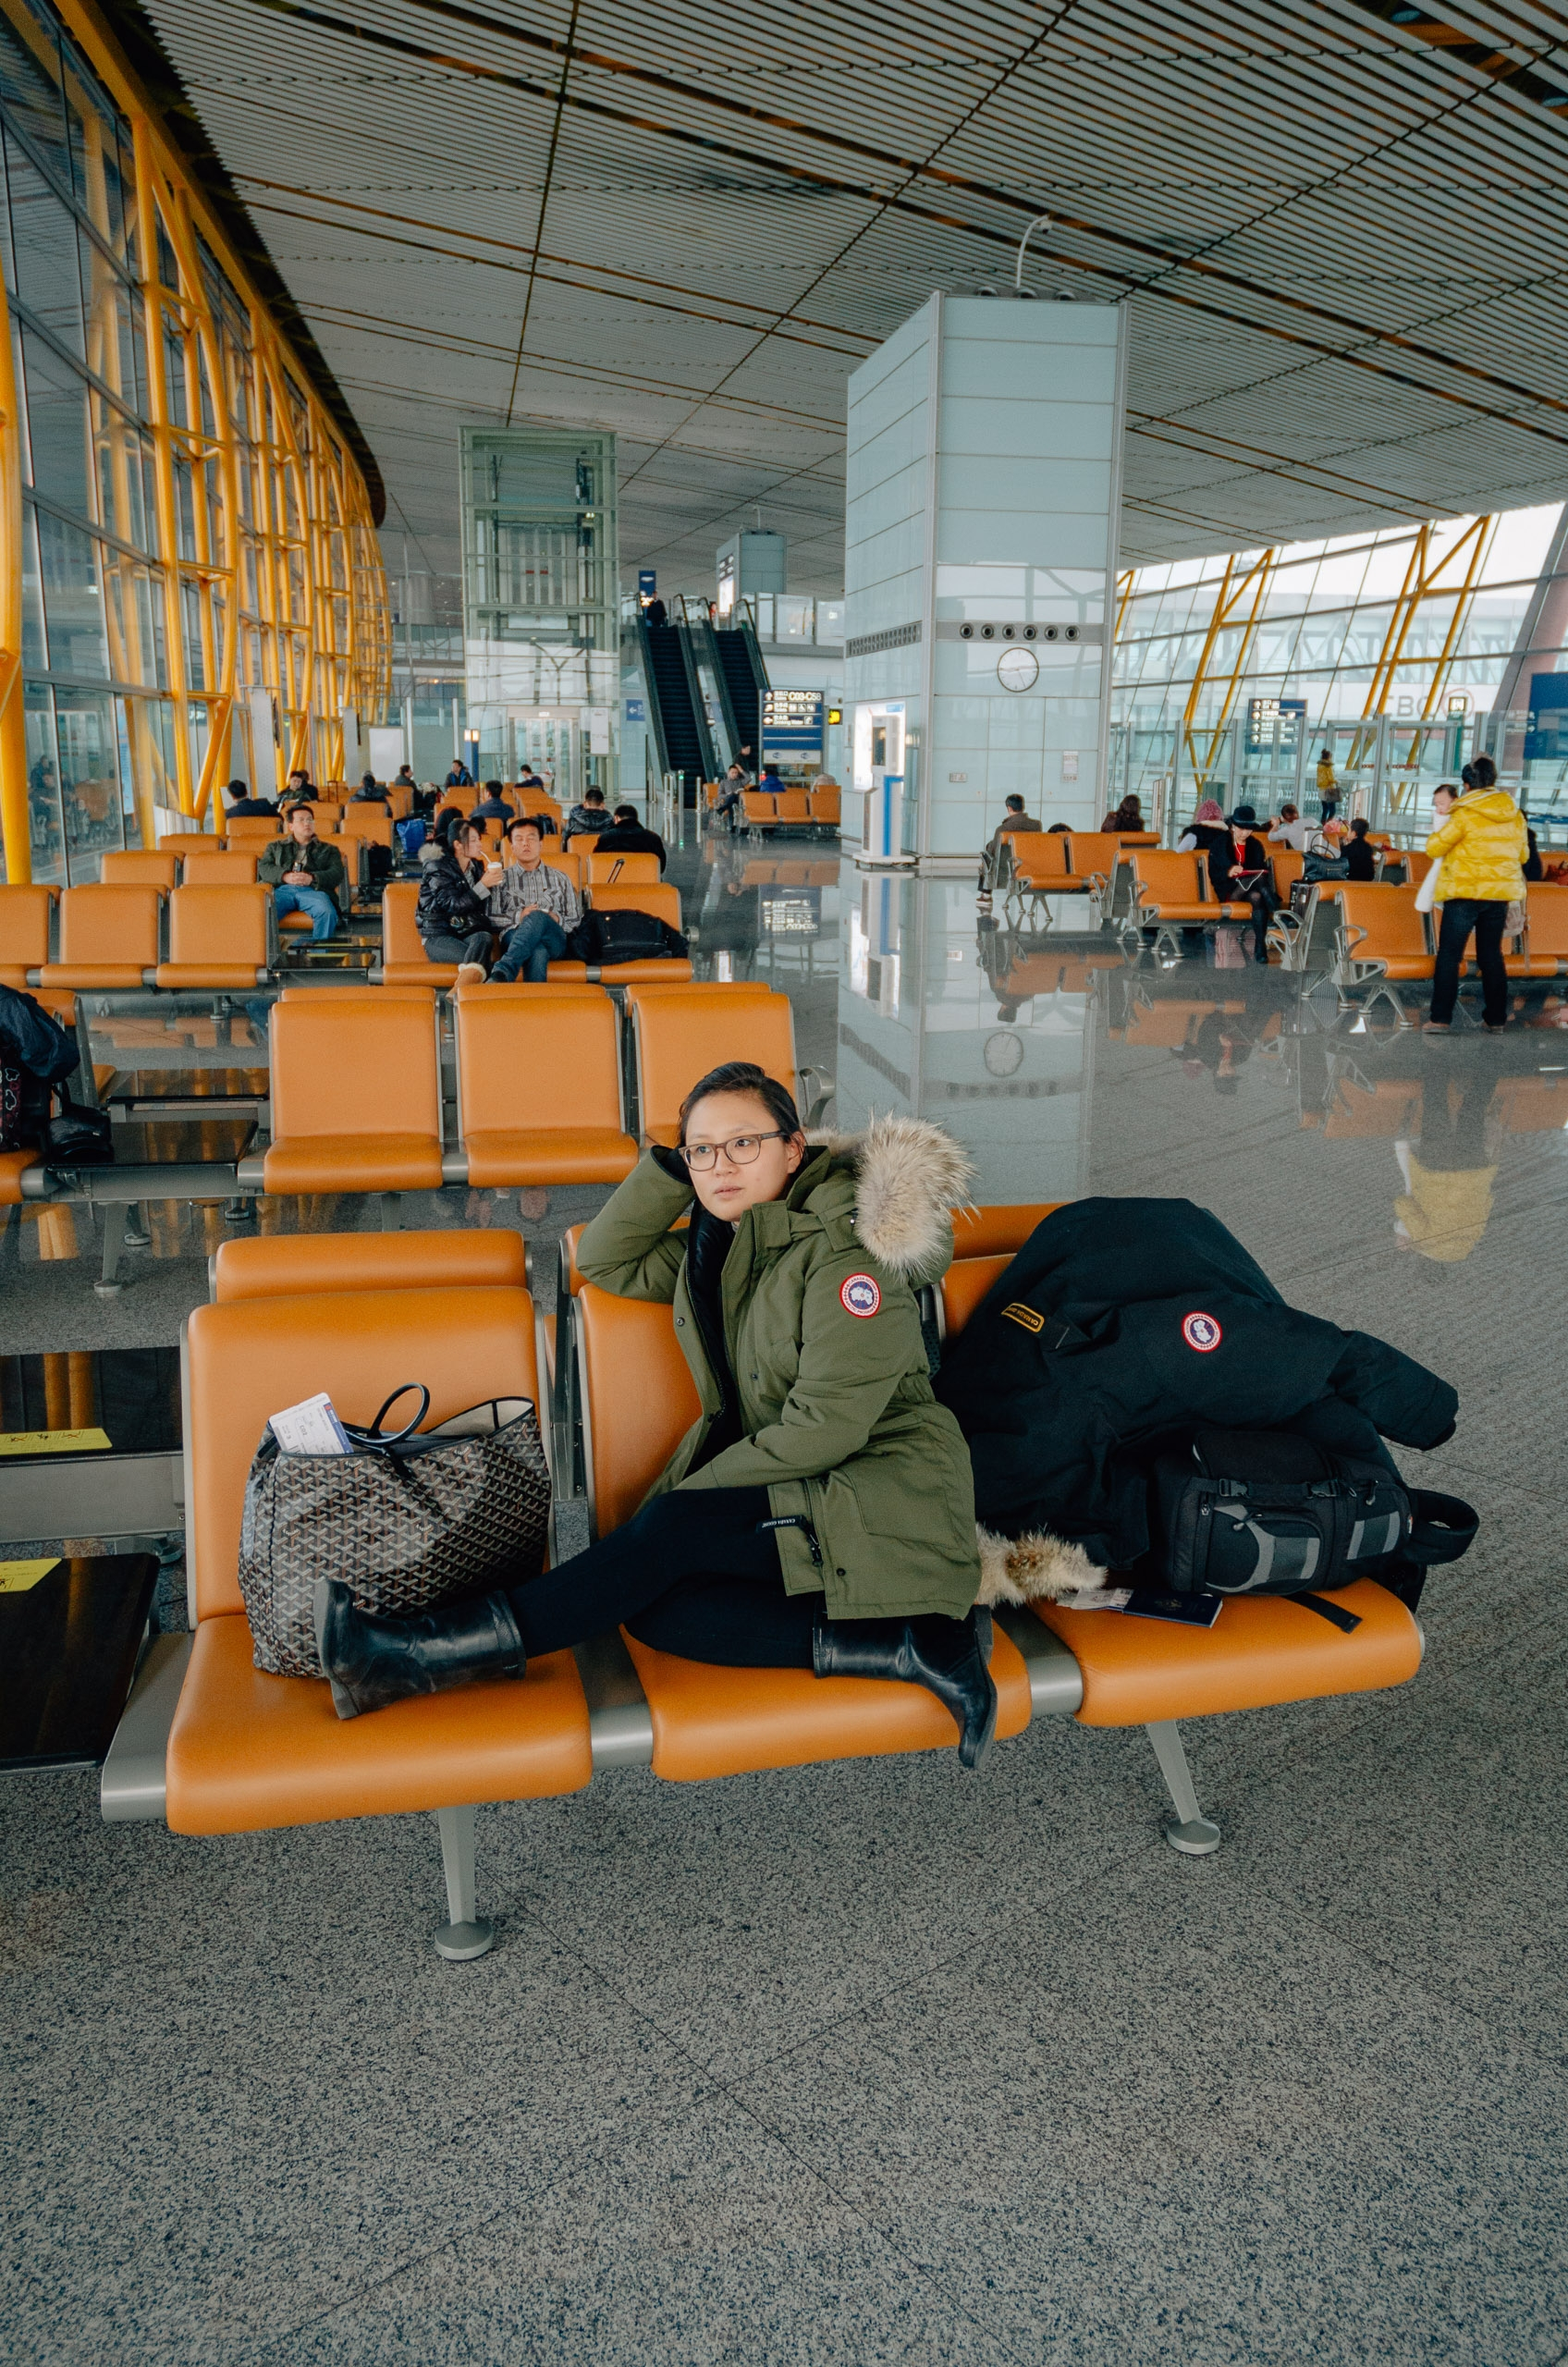 Waiting at the Beijing Airport